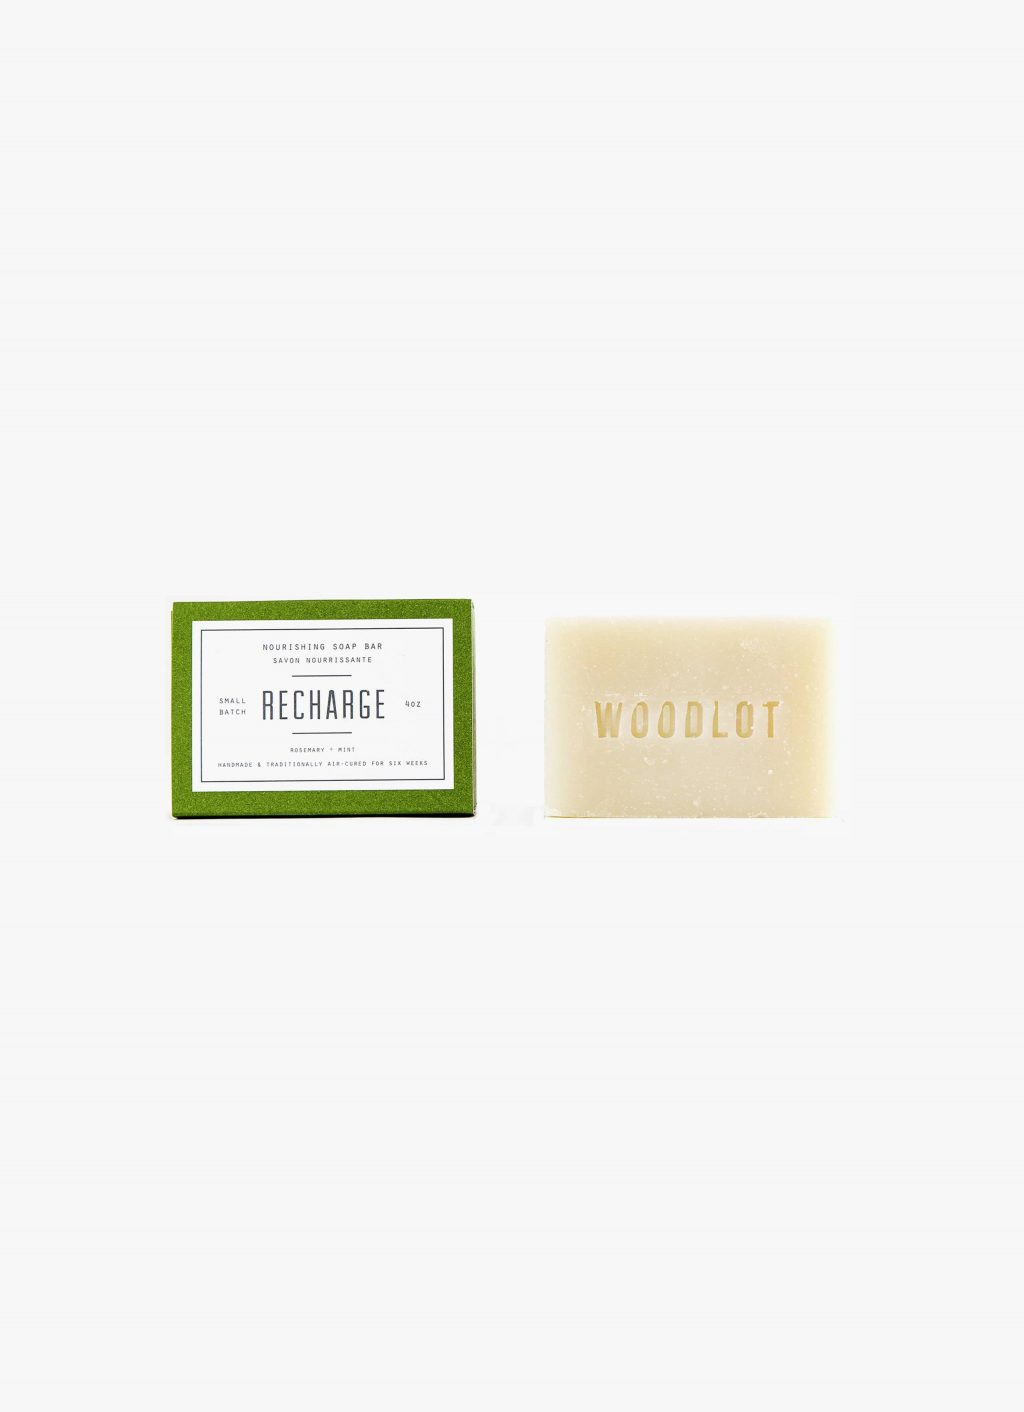 Woodlot - 4OZ- Soap Bar - Recharge